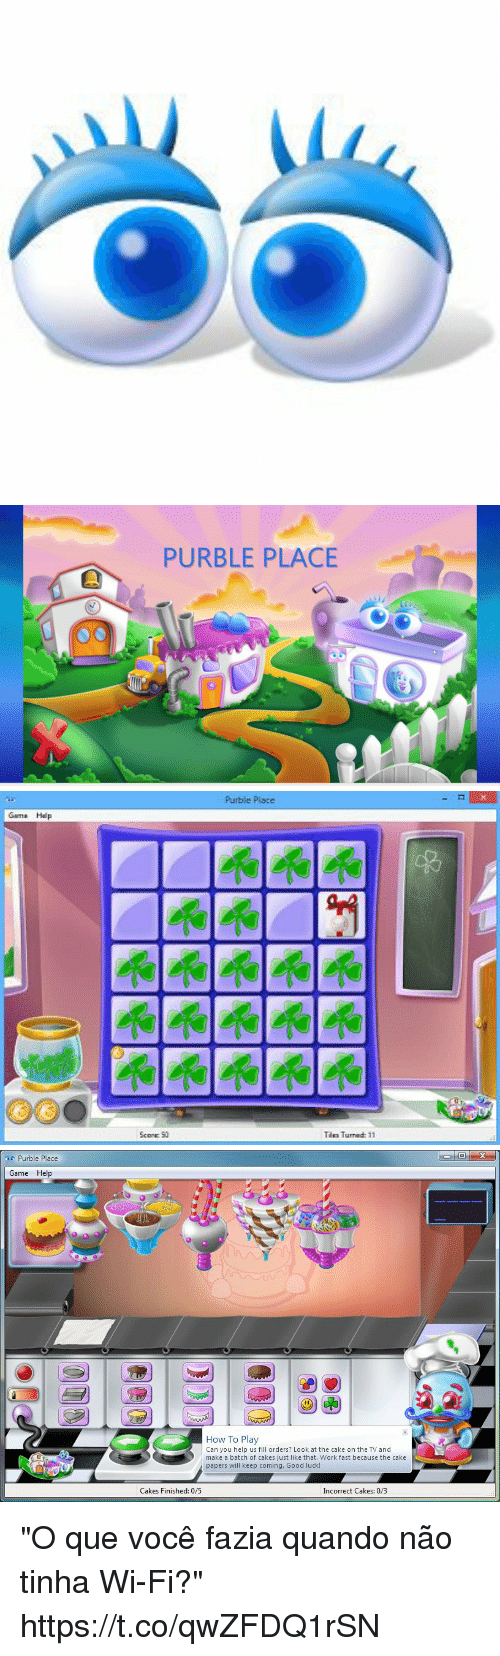 "Work, Cake, and Game: PURBLE PLACE   Purble Place  Turnad: 11   Purble Place  Game Help  How To Play  Can you help us fill orders? Look at the cake on the TV and  make a batch of cakes just like that. Work fast because the cake  papers will keep coming, Good luck!  0  Cakes Finished: 0/5  Incorrect Cakes: 0/3 ""O que você fazia quando não tinha Wi-Fi?"" https://t.co/qwZFDQ1rSN"